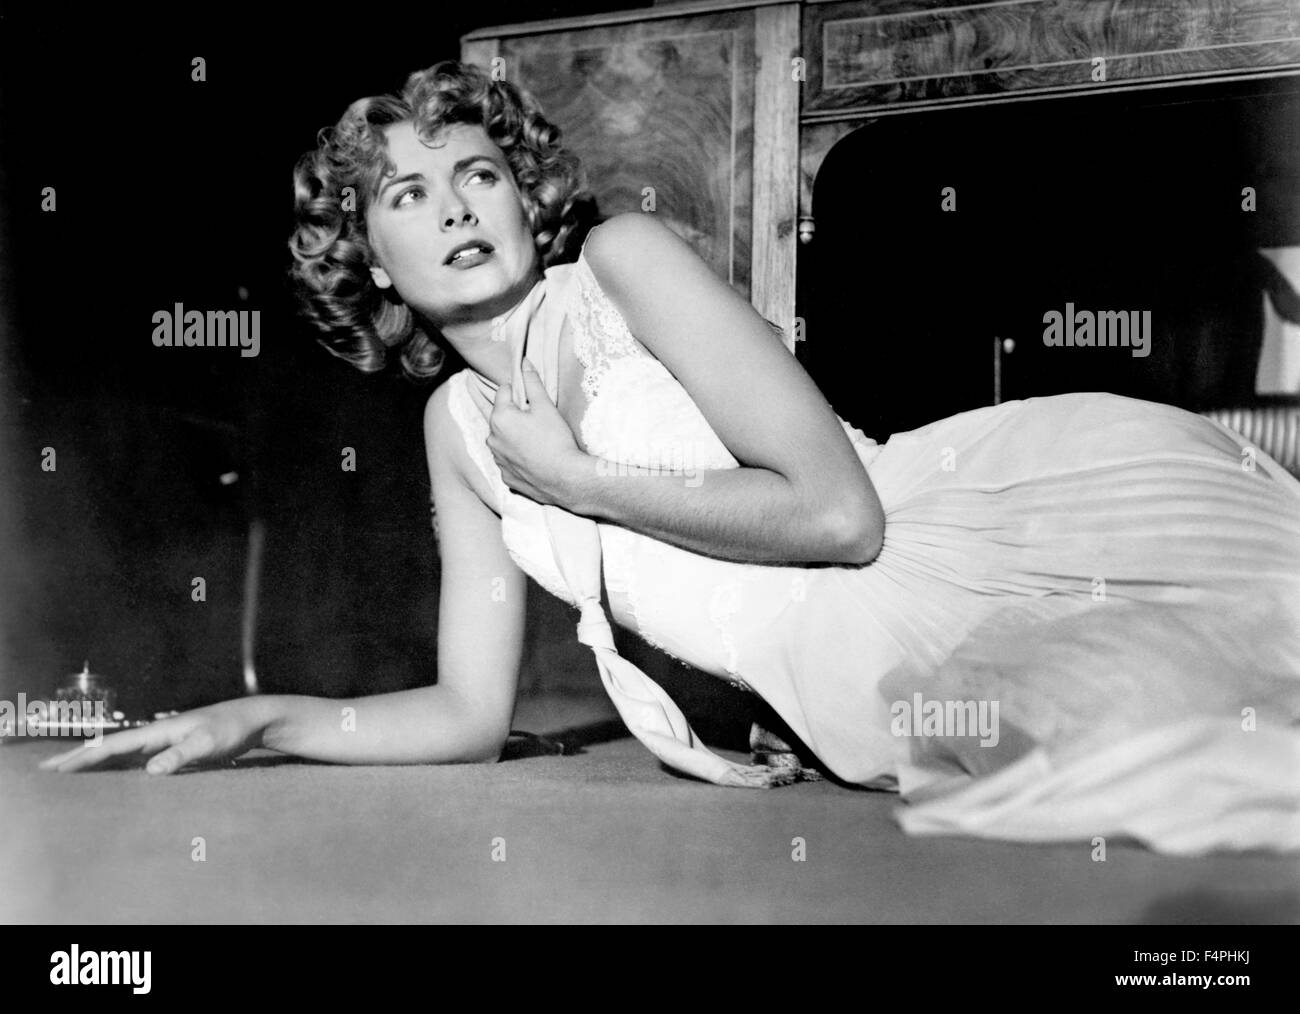 Grace Kelly / Dial M for Murder / 1954 directed by Alfred Hitchcock [Warner Bros. Pictures] - Stock Image